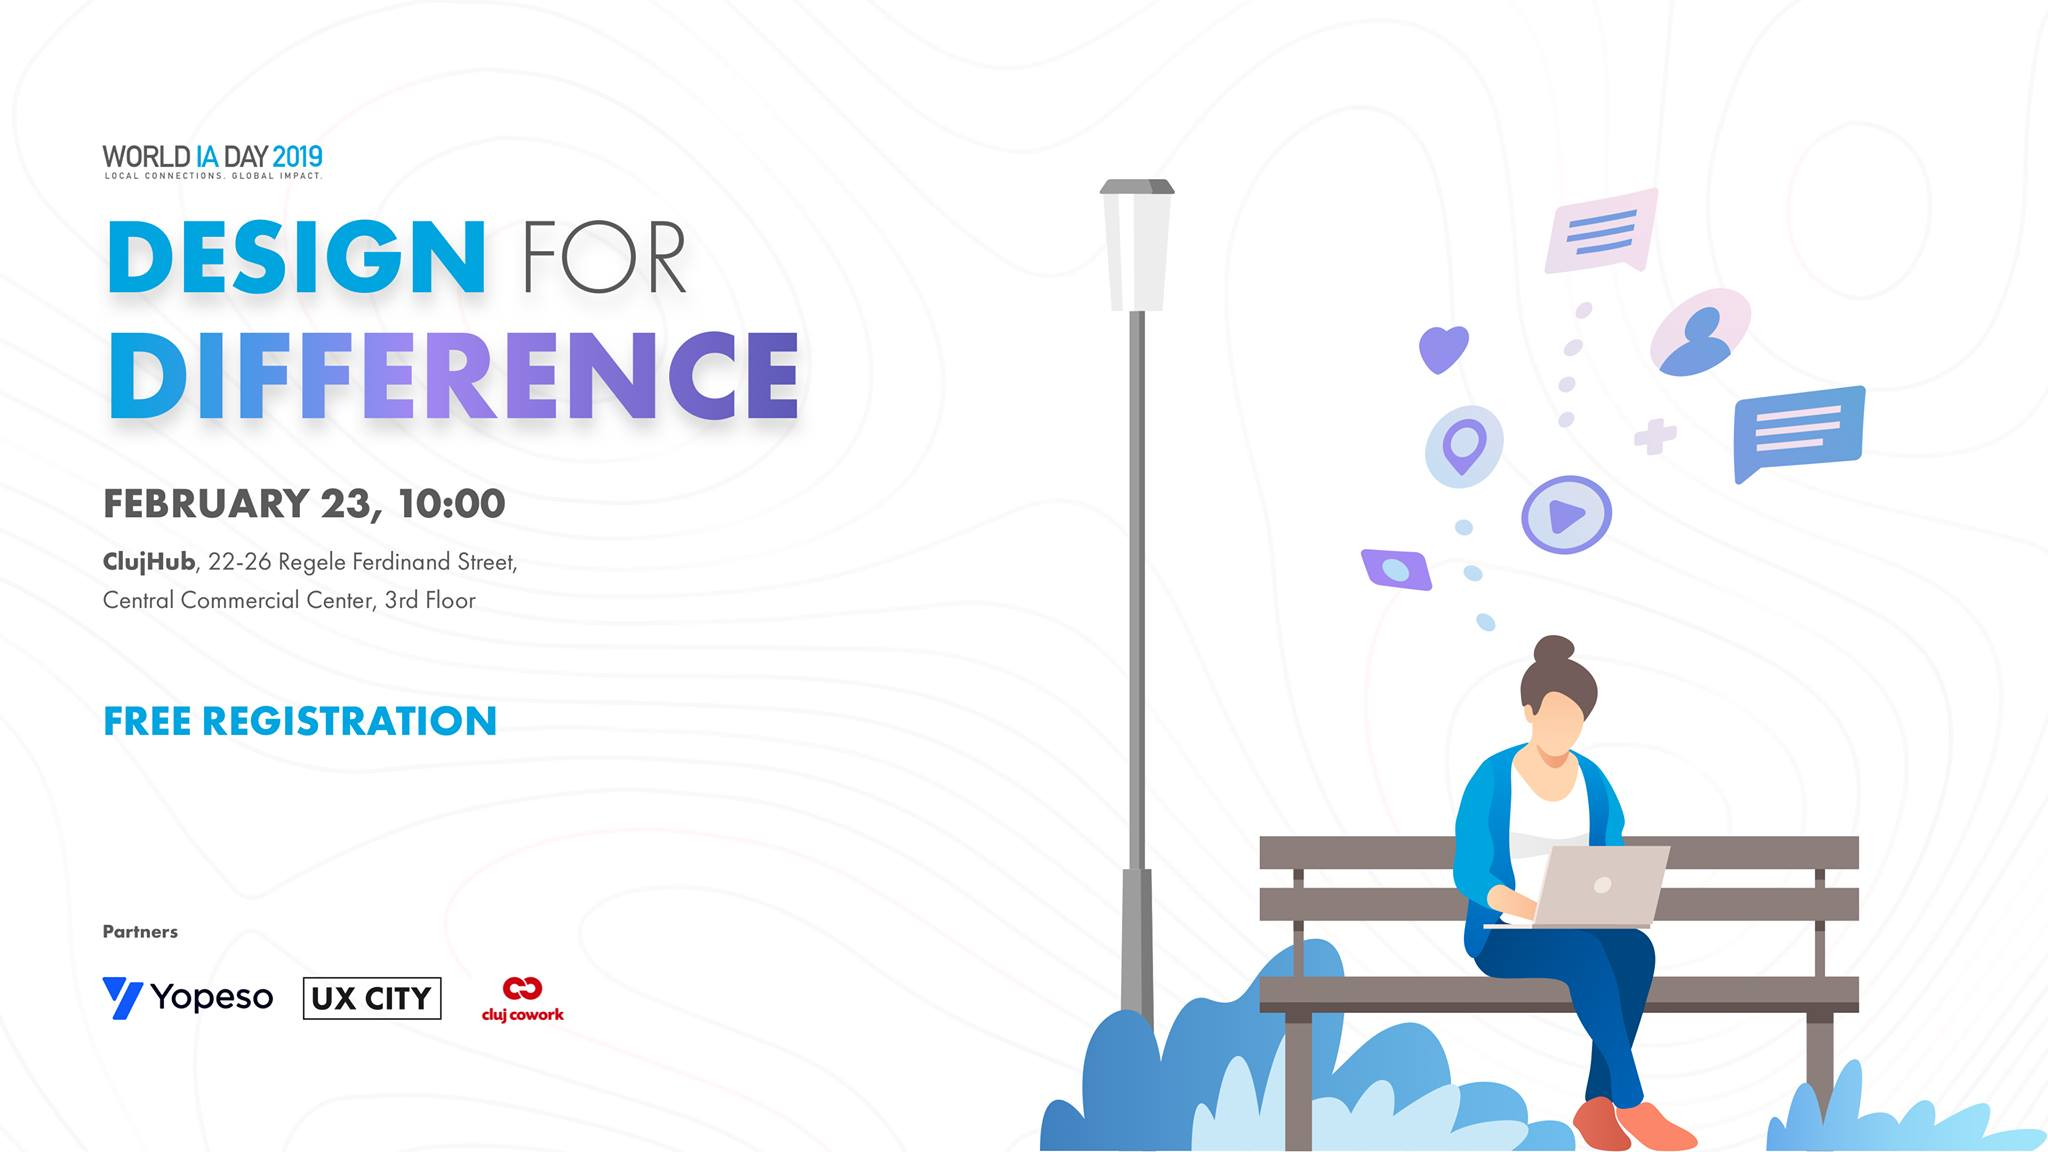 Design For Difference — World IA Day 2019